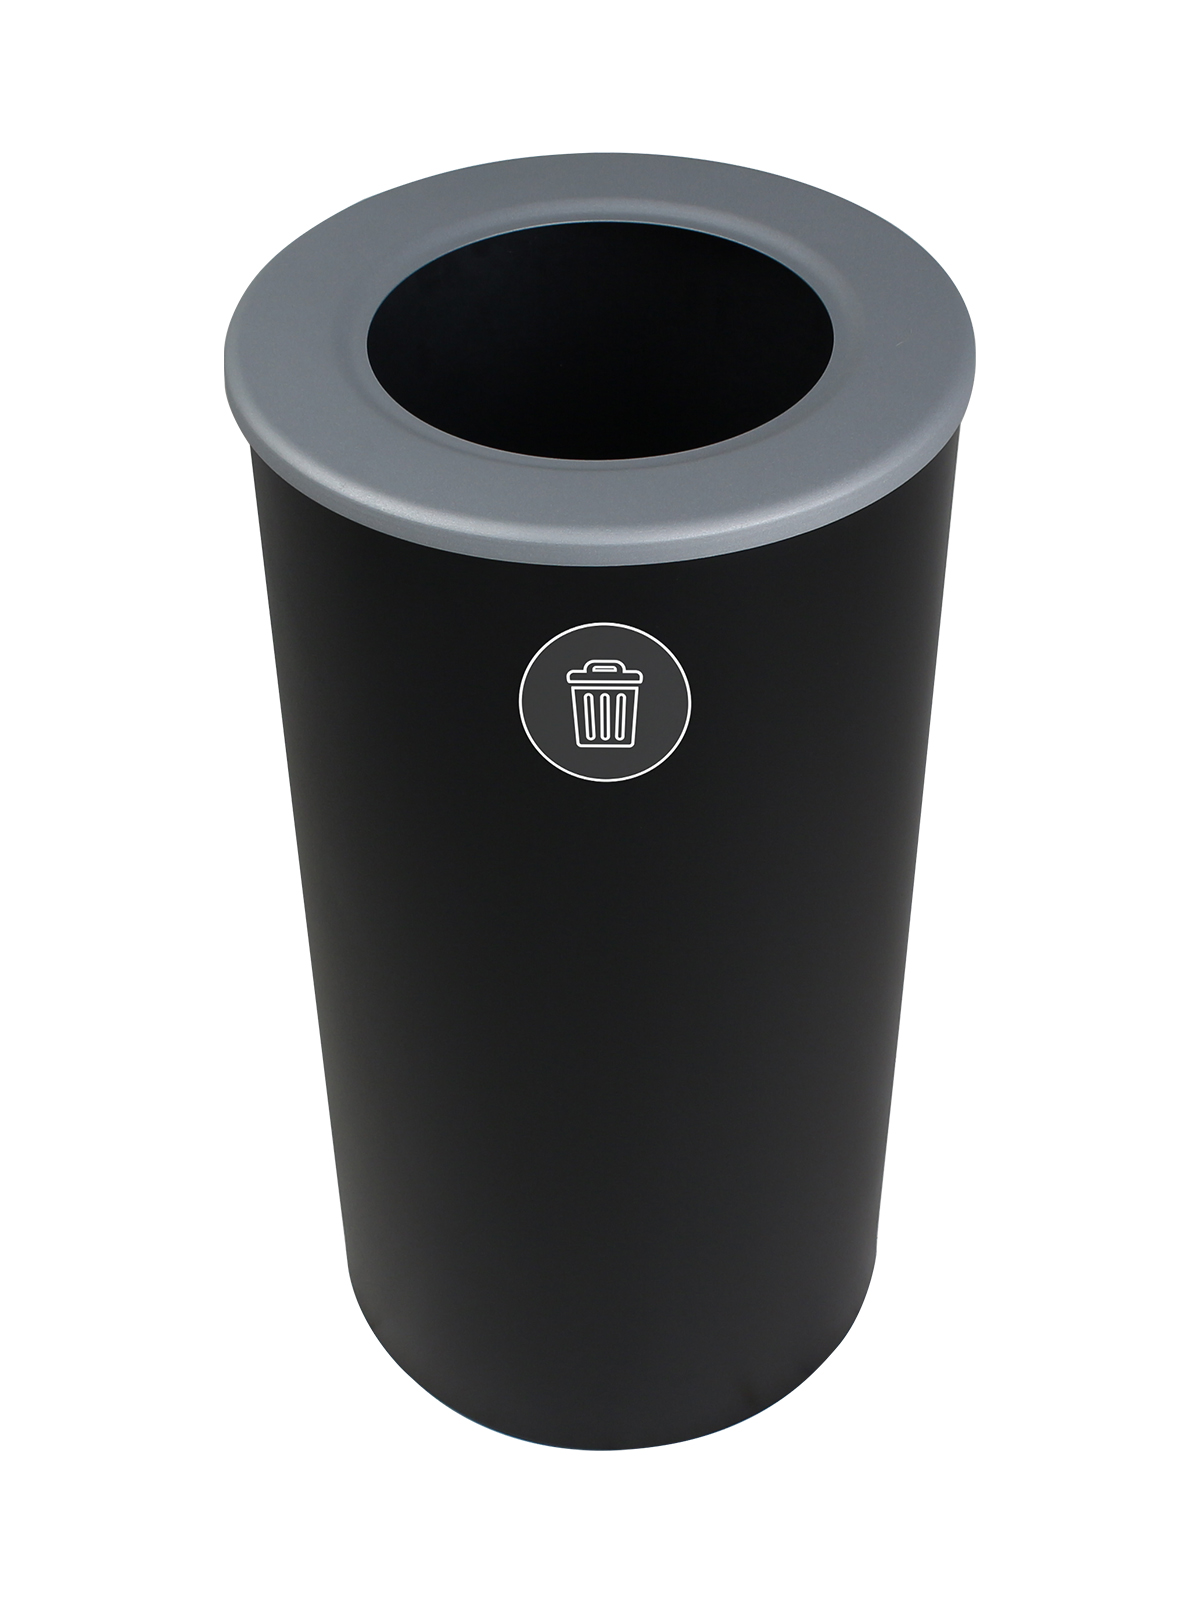 SPECTRUM - Single - Round - Waste - Full - Black